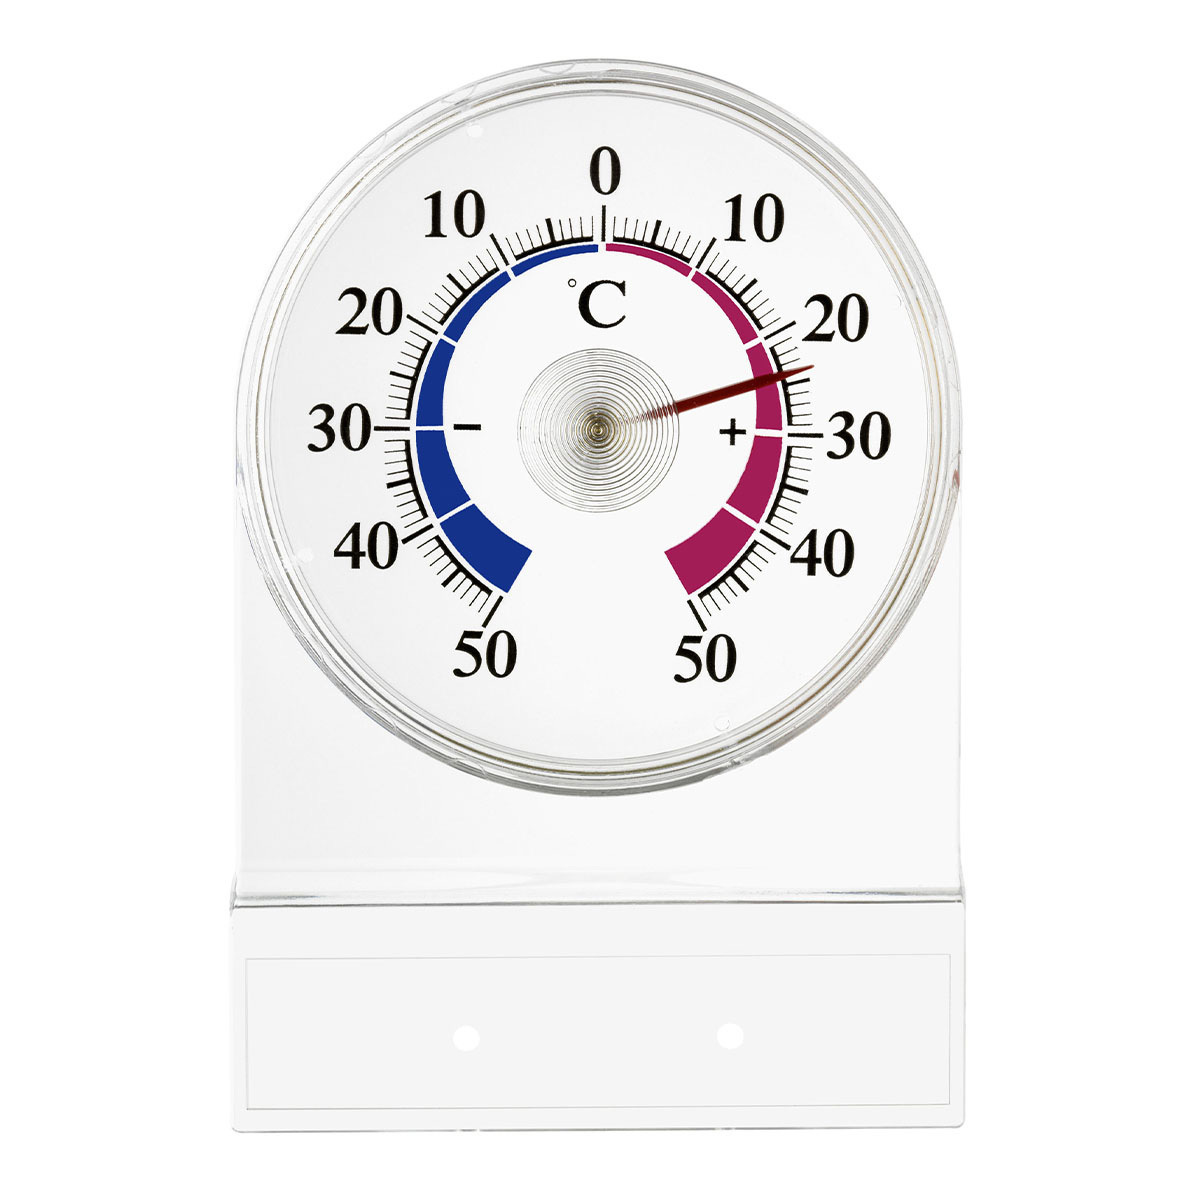 14-6003-analoges-fensterthermometer1-1200x1200px.jpg